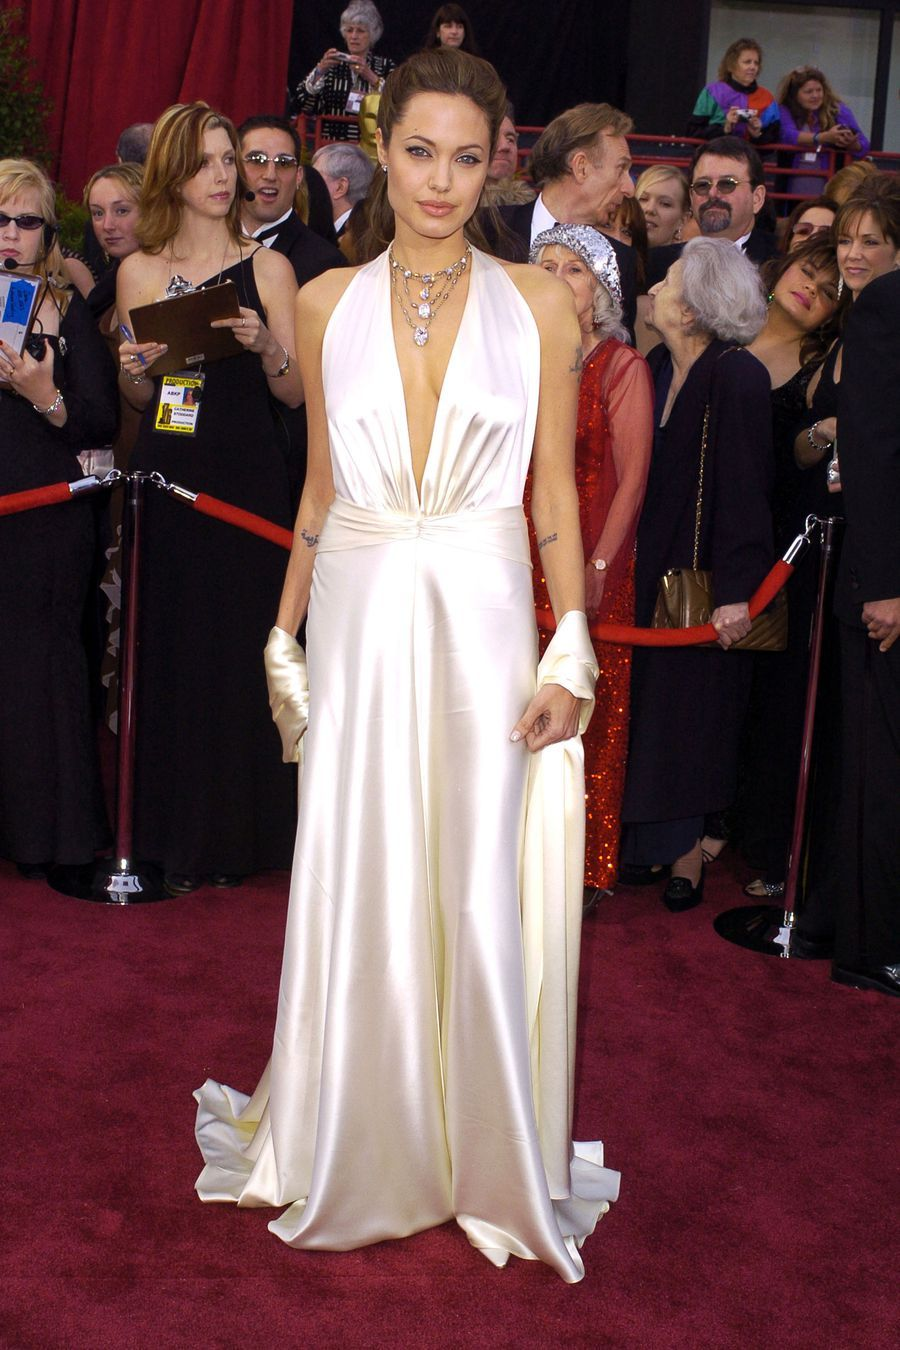 The Best Red Carpet Gowns Of All Time Best Oscar Dresses Red Carpet Dresses Best Oscar Dresses